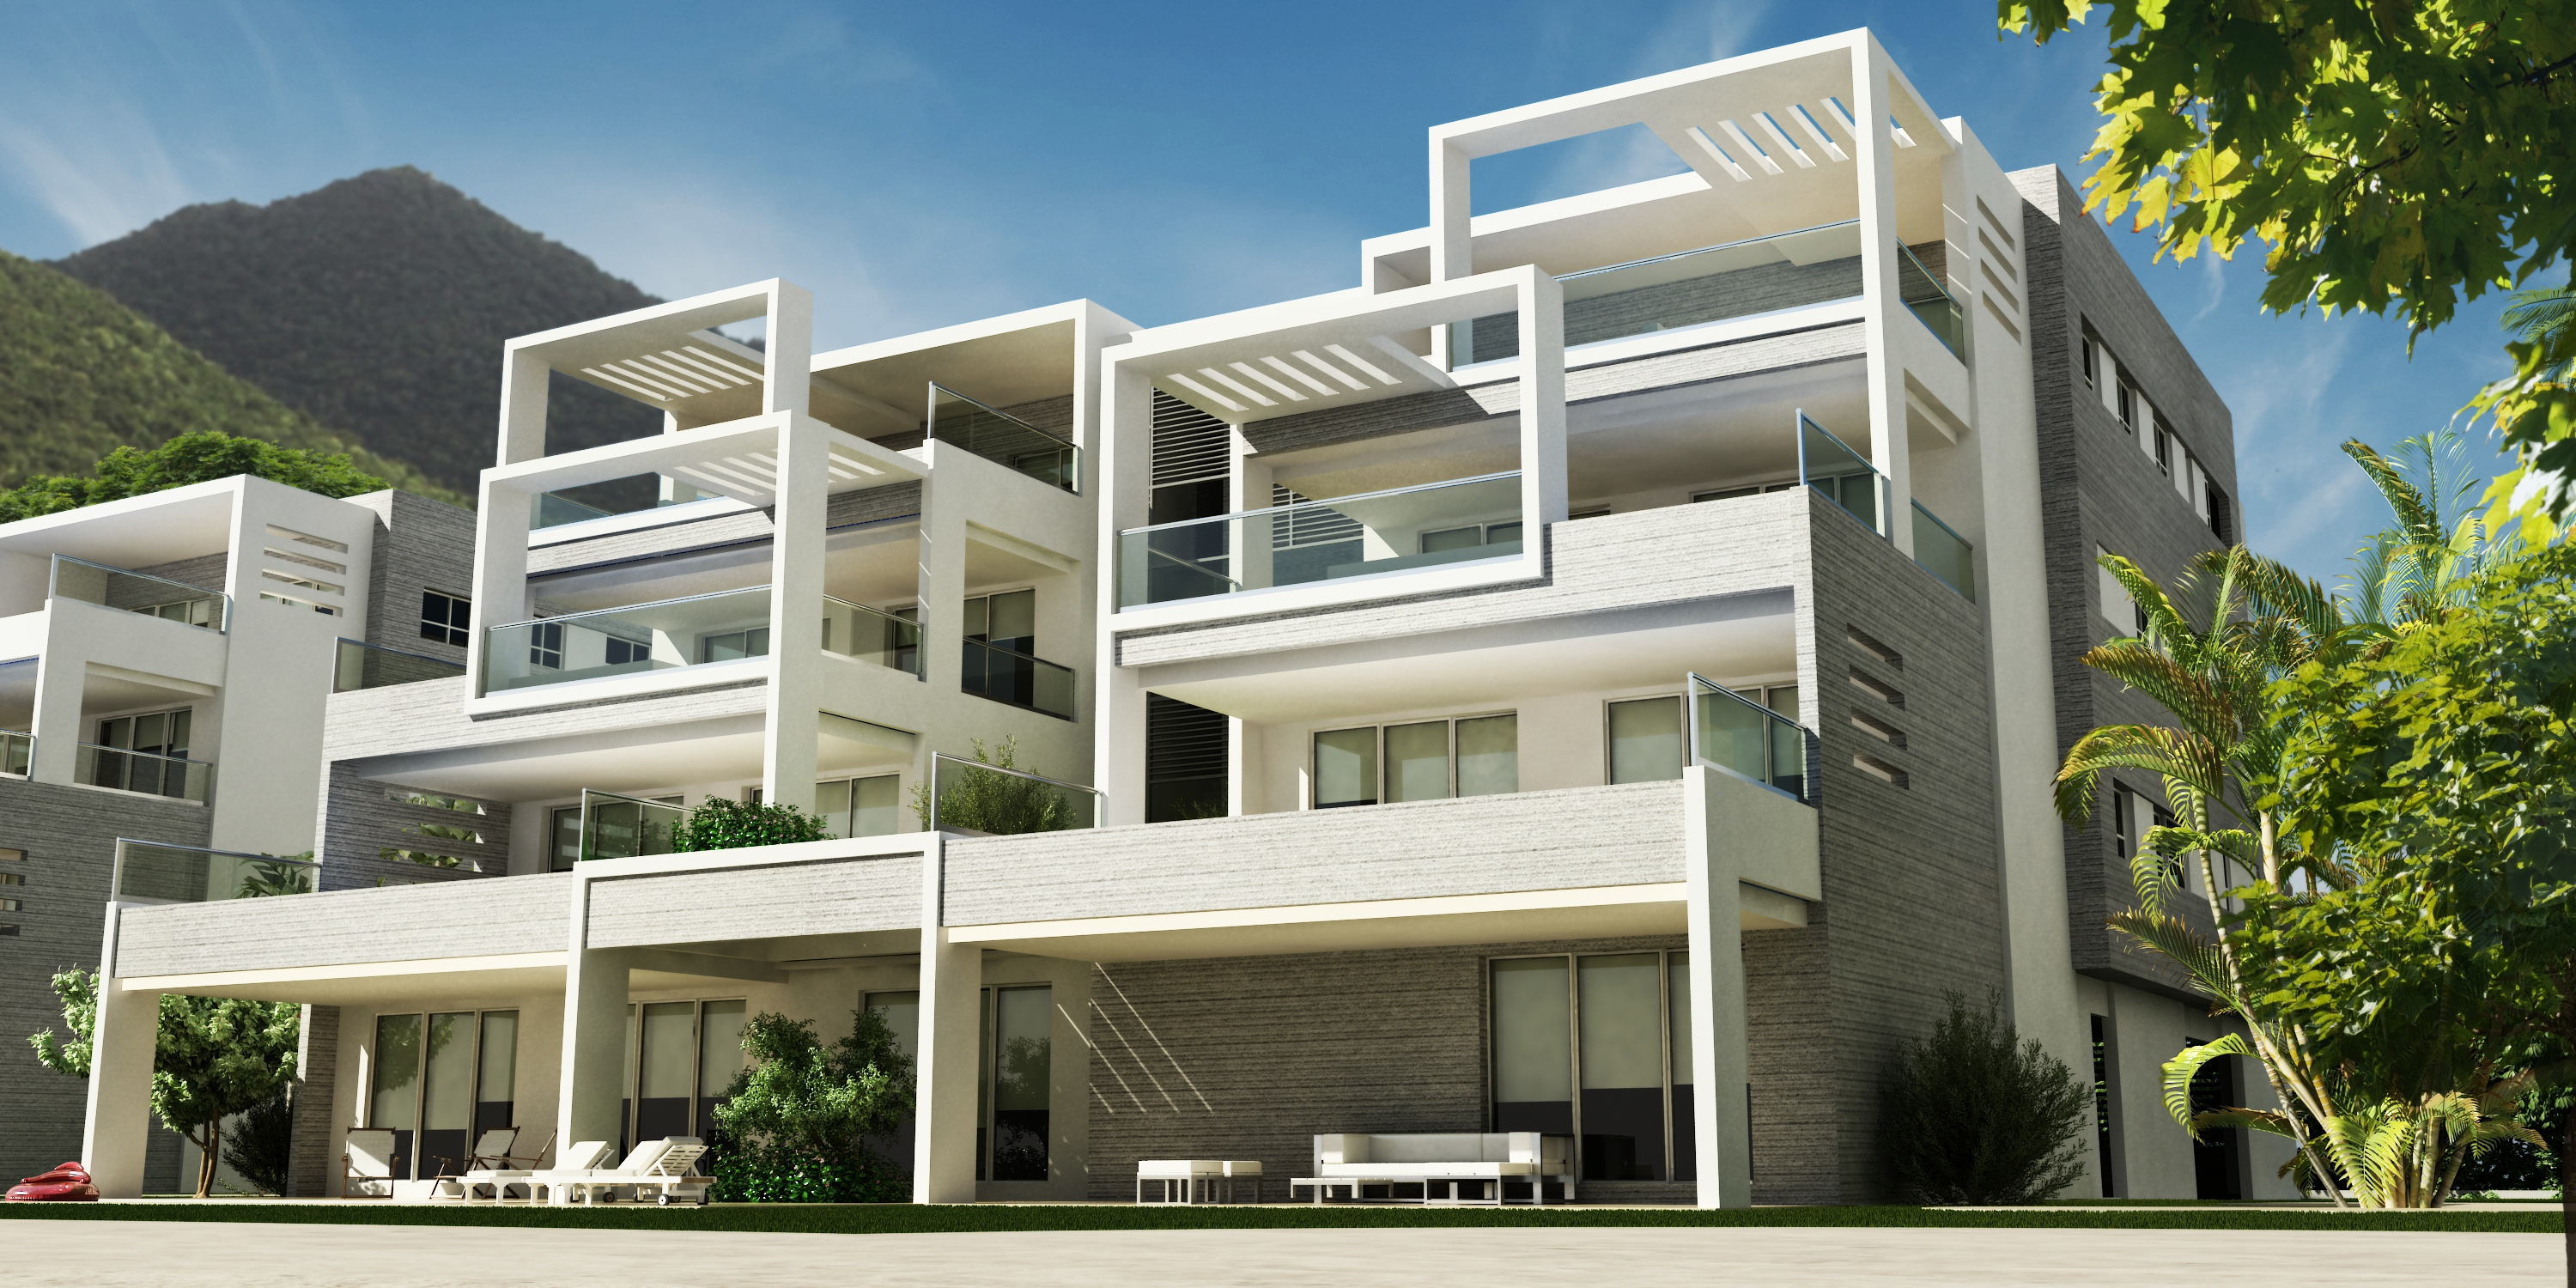 Designed Projects - 6ba43-render-1-alpha-3.1.jpg